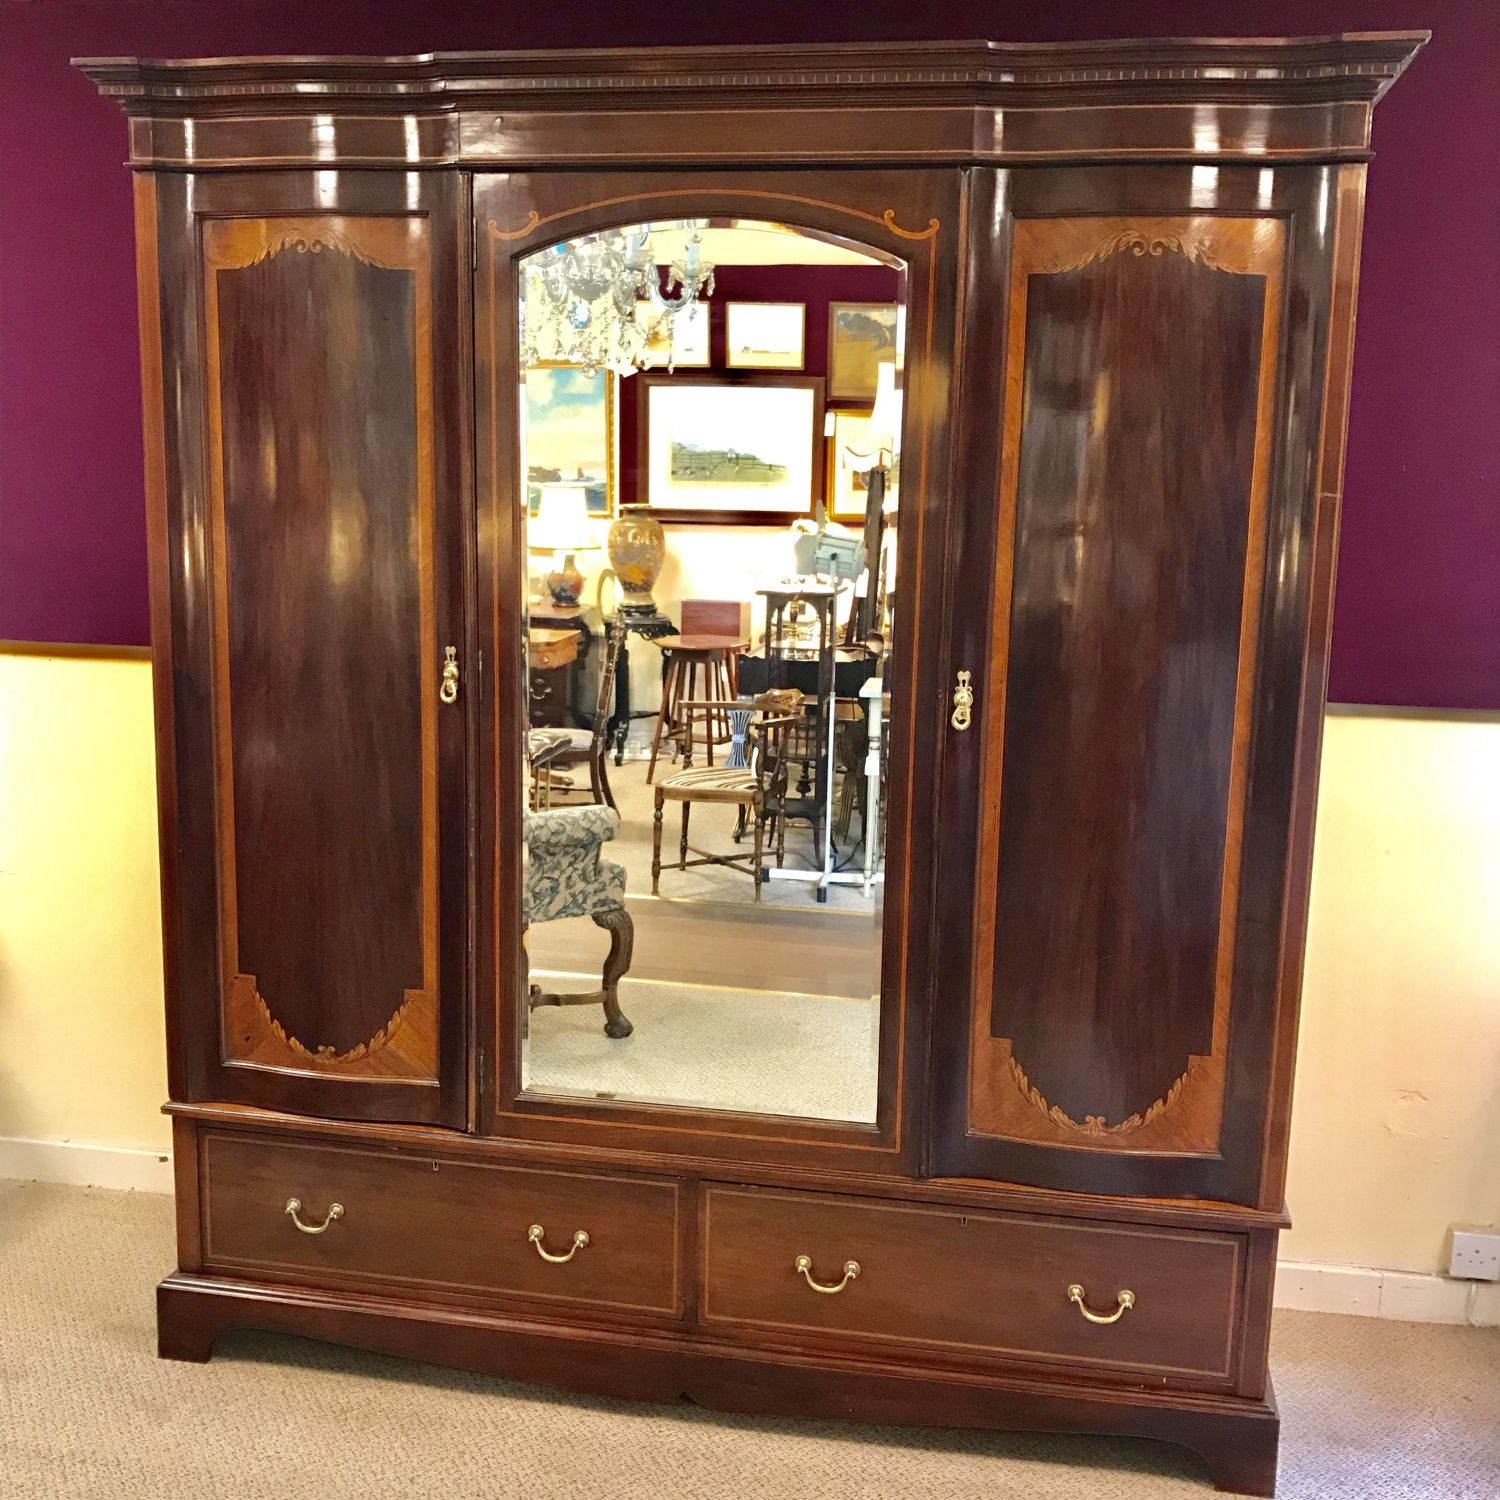 Antiques Beautiful Antique Triple Wardrobe With Bevelled Mirror Armoires/wardrobes